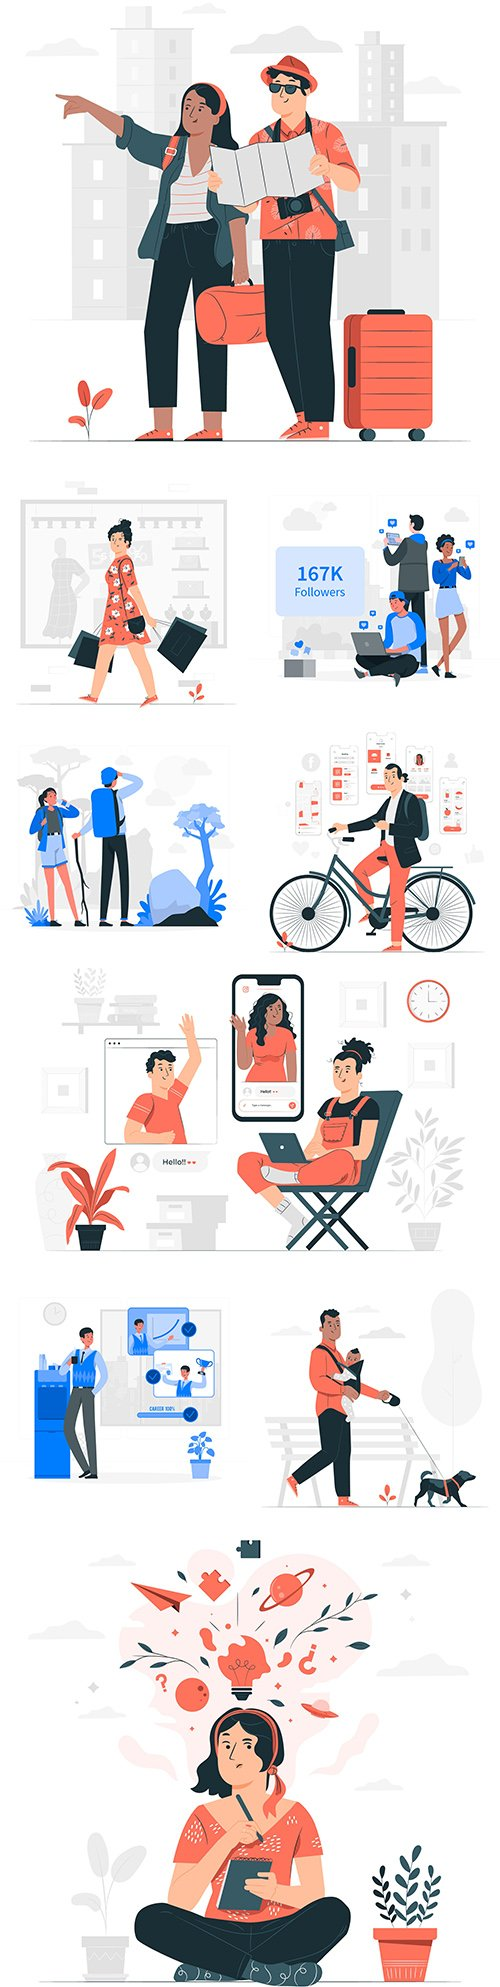 Communication people and different life situations concept illustrations